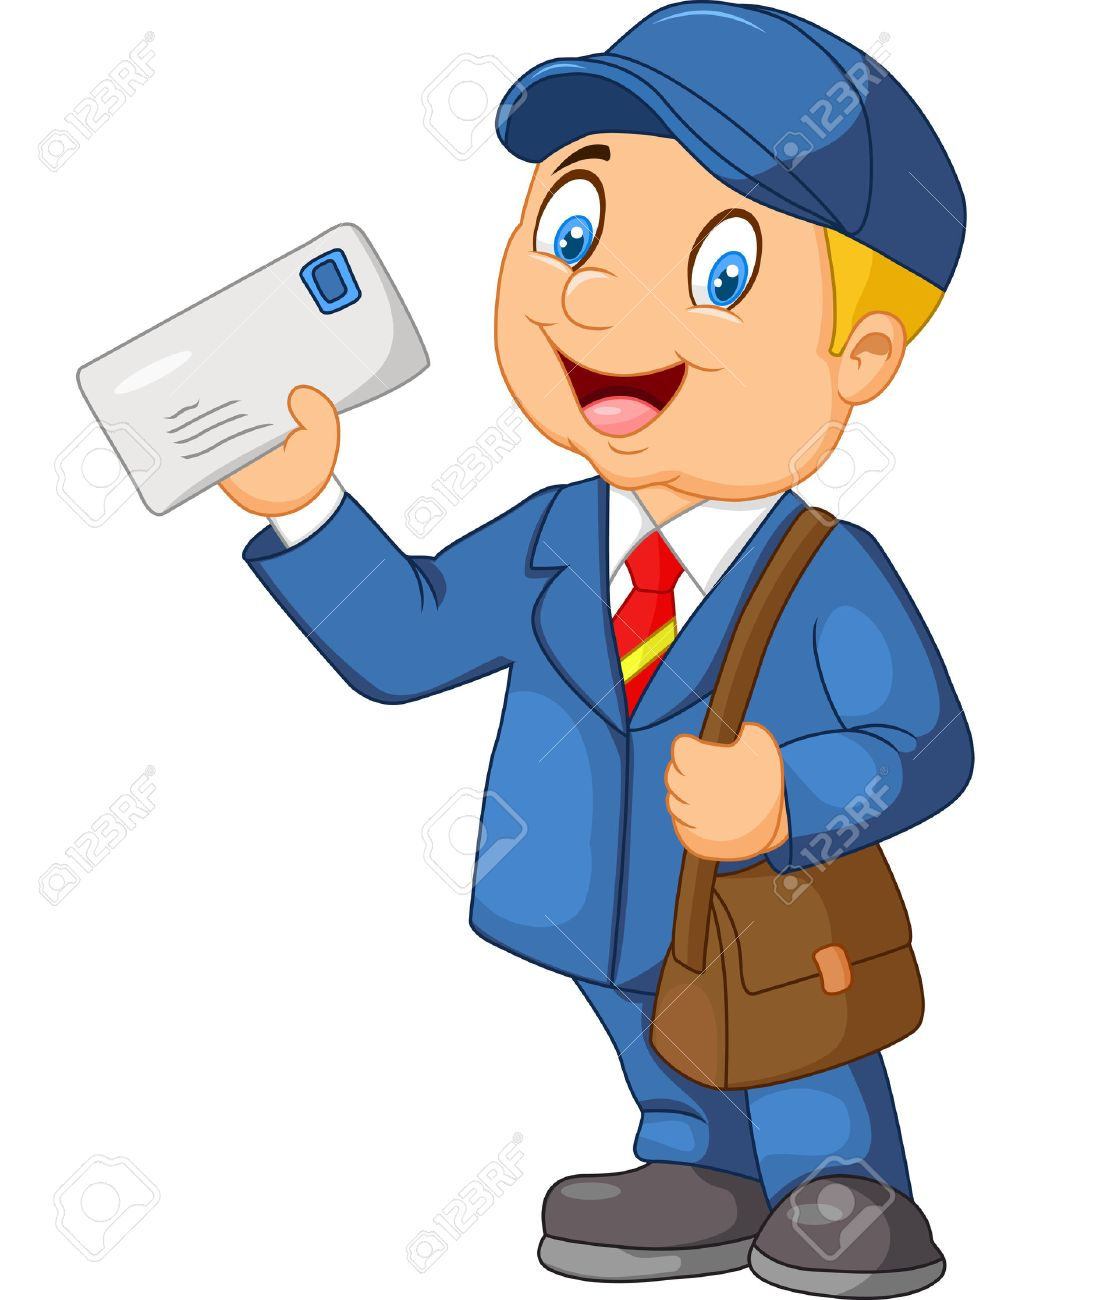 Cartoon Mail Carrier With Bag And Letter On White Background – Mail Carrier Job